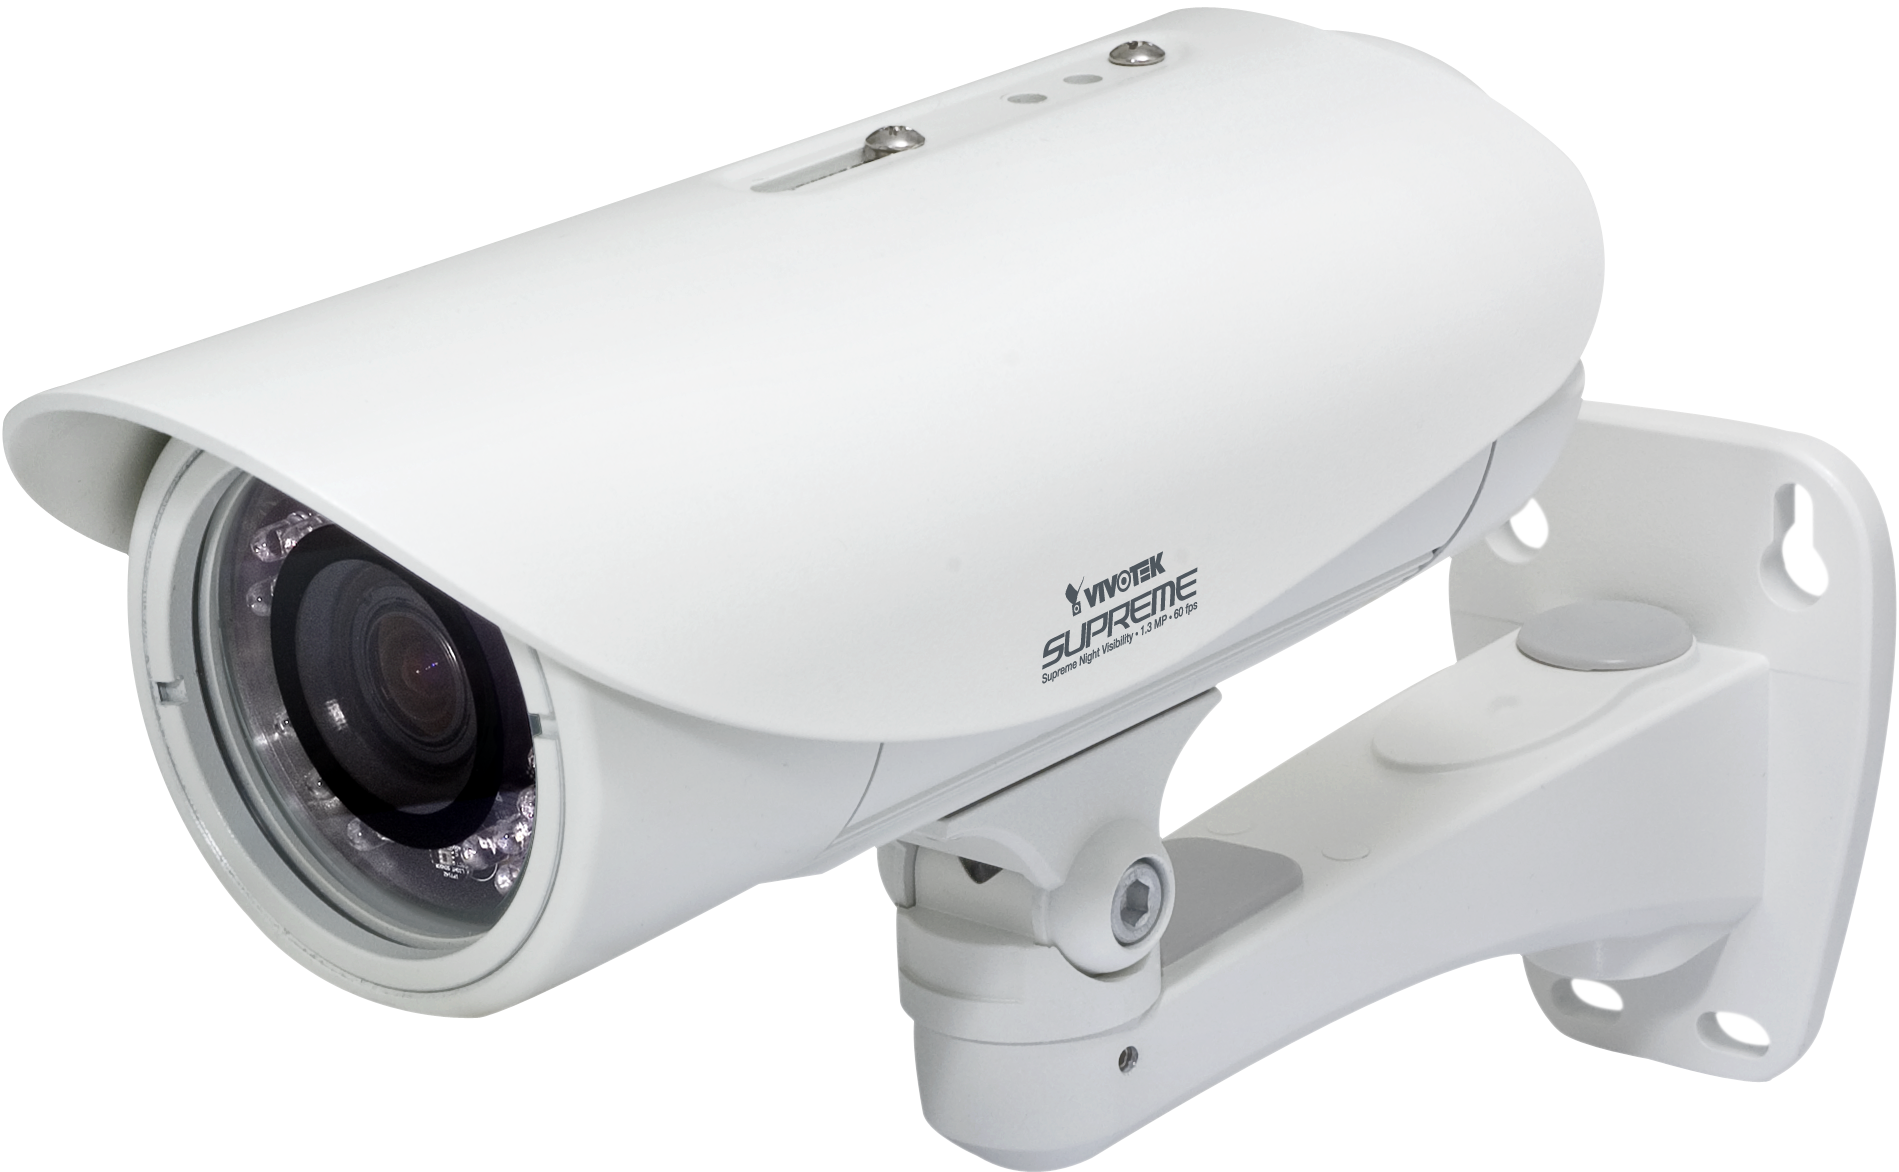 Now you can download Web Camera High Quality PNG